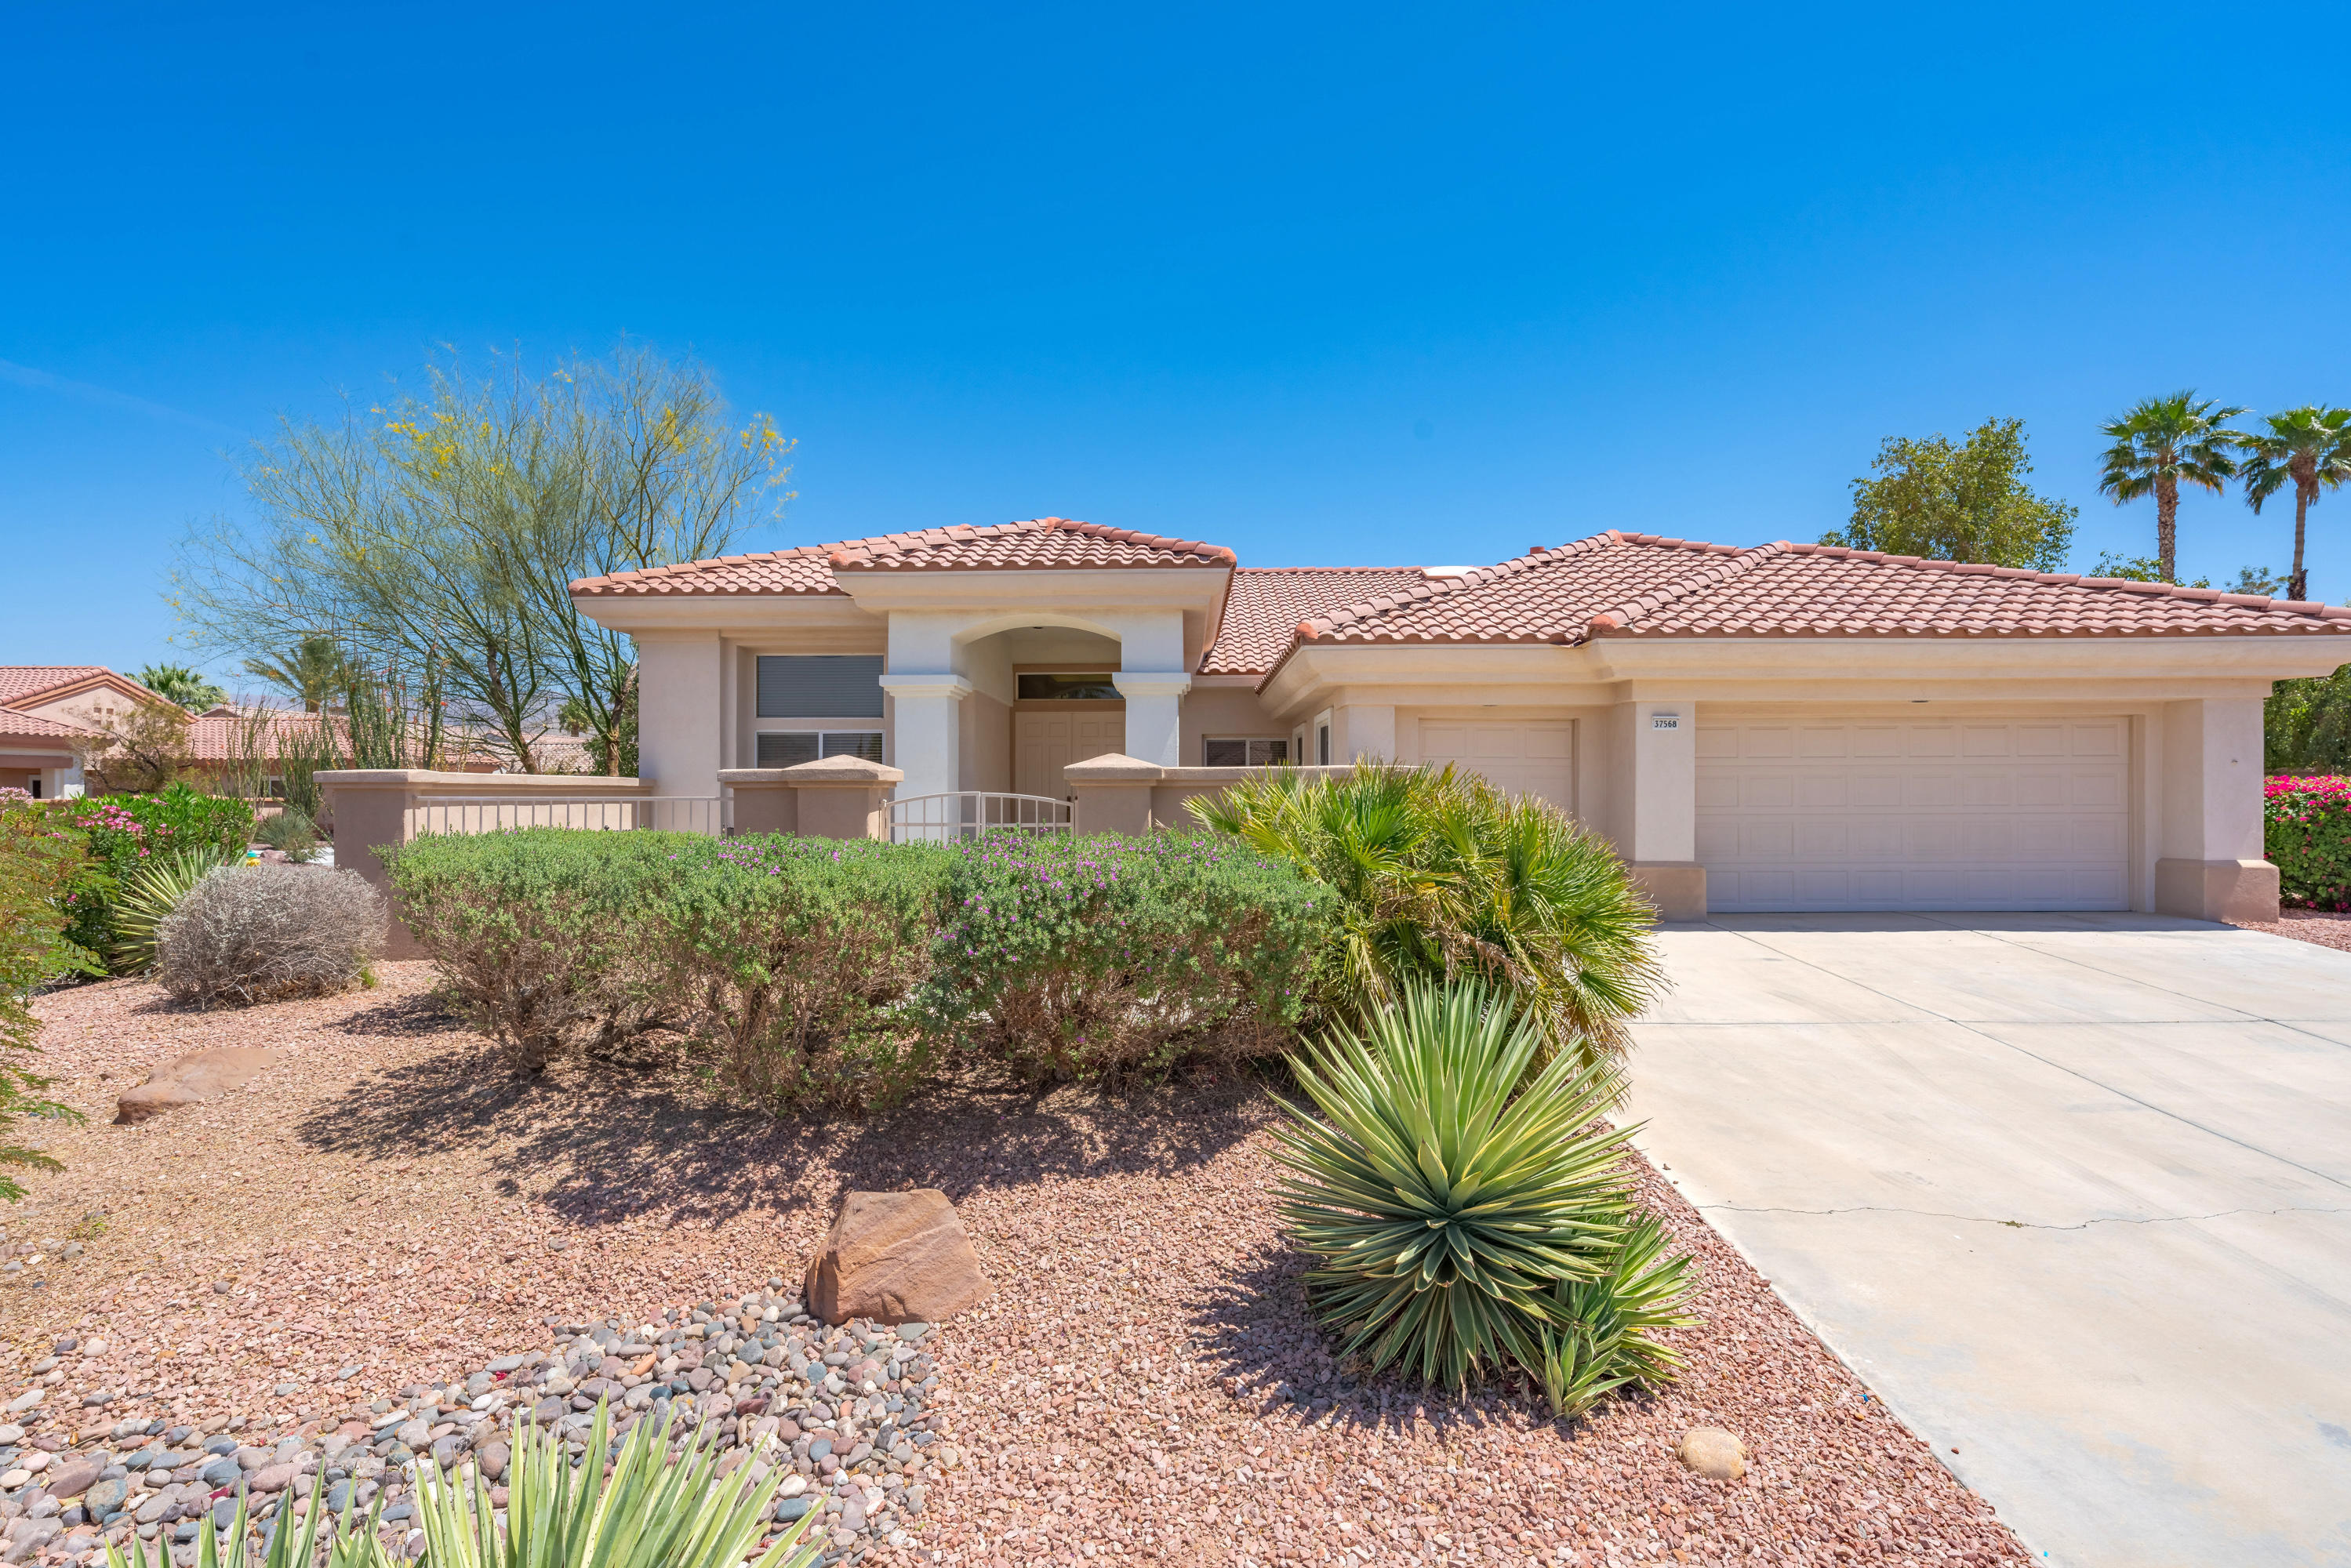 Photo of 37568 Copperstone Court, Palm Desert, CA 92211